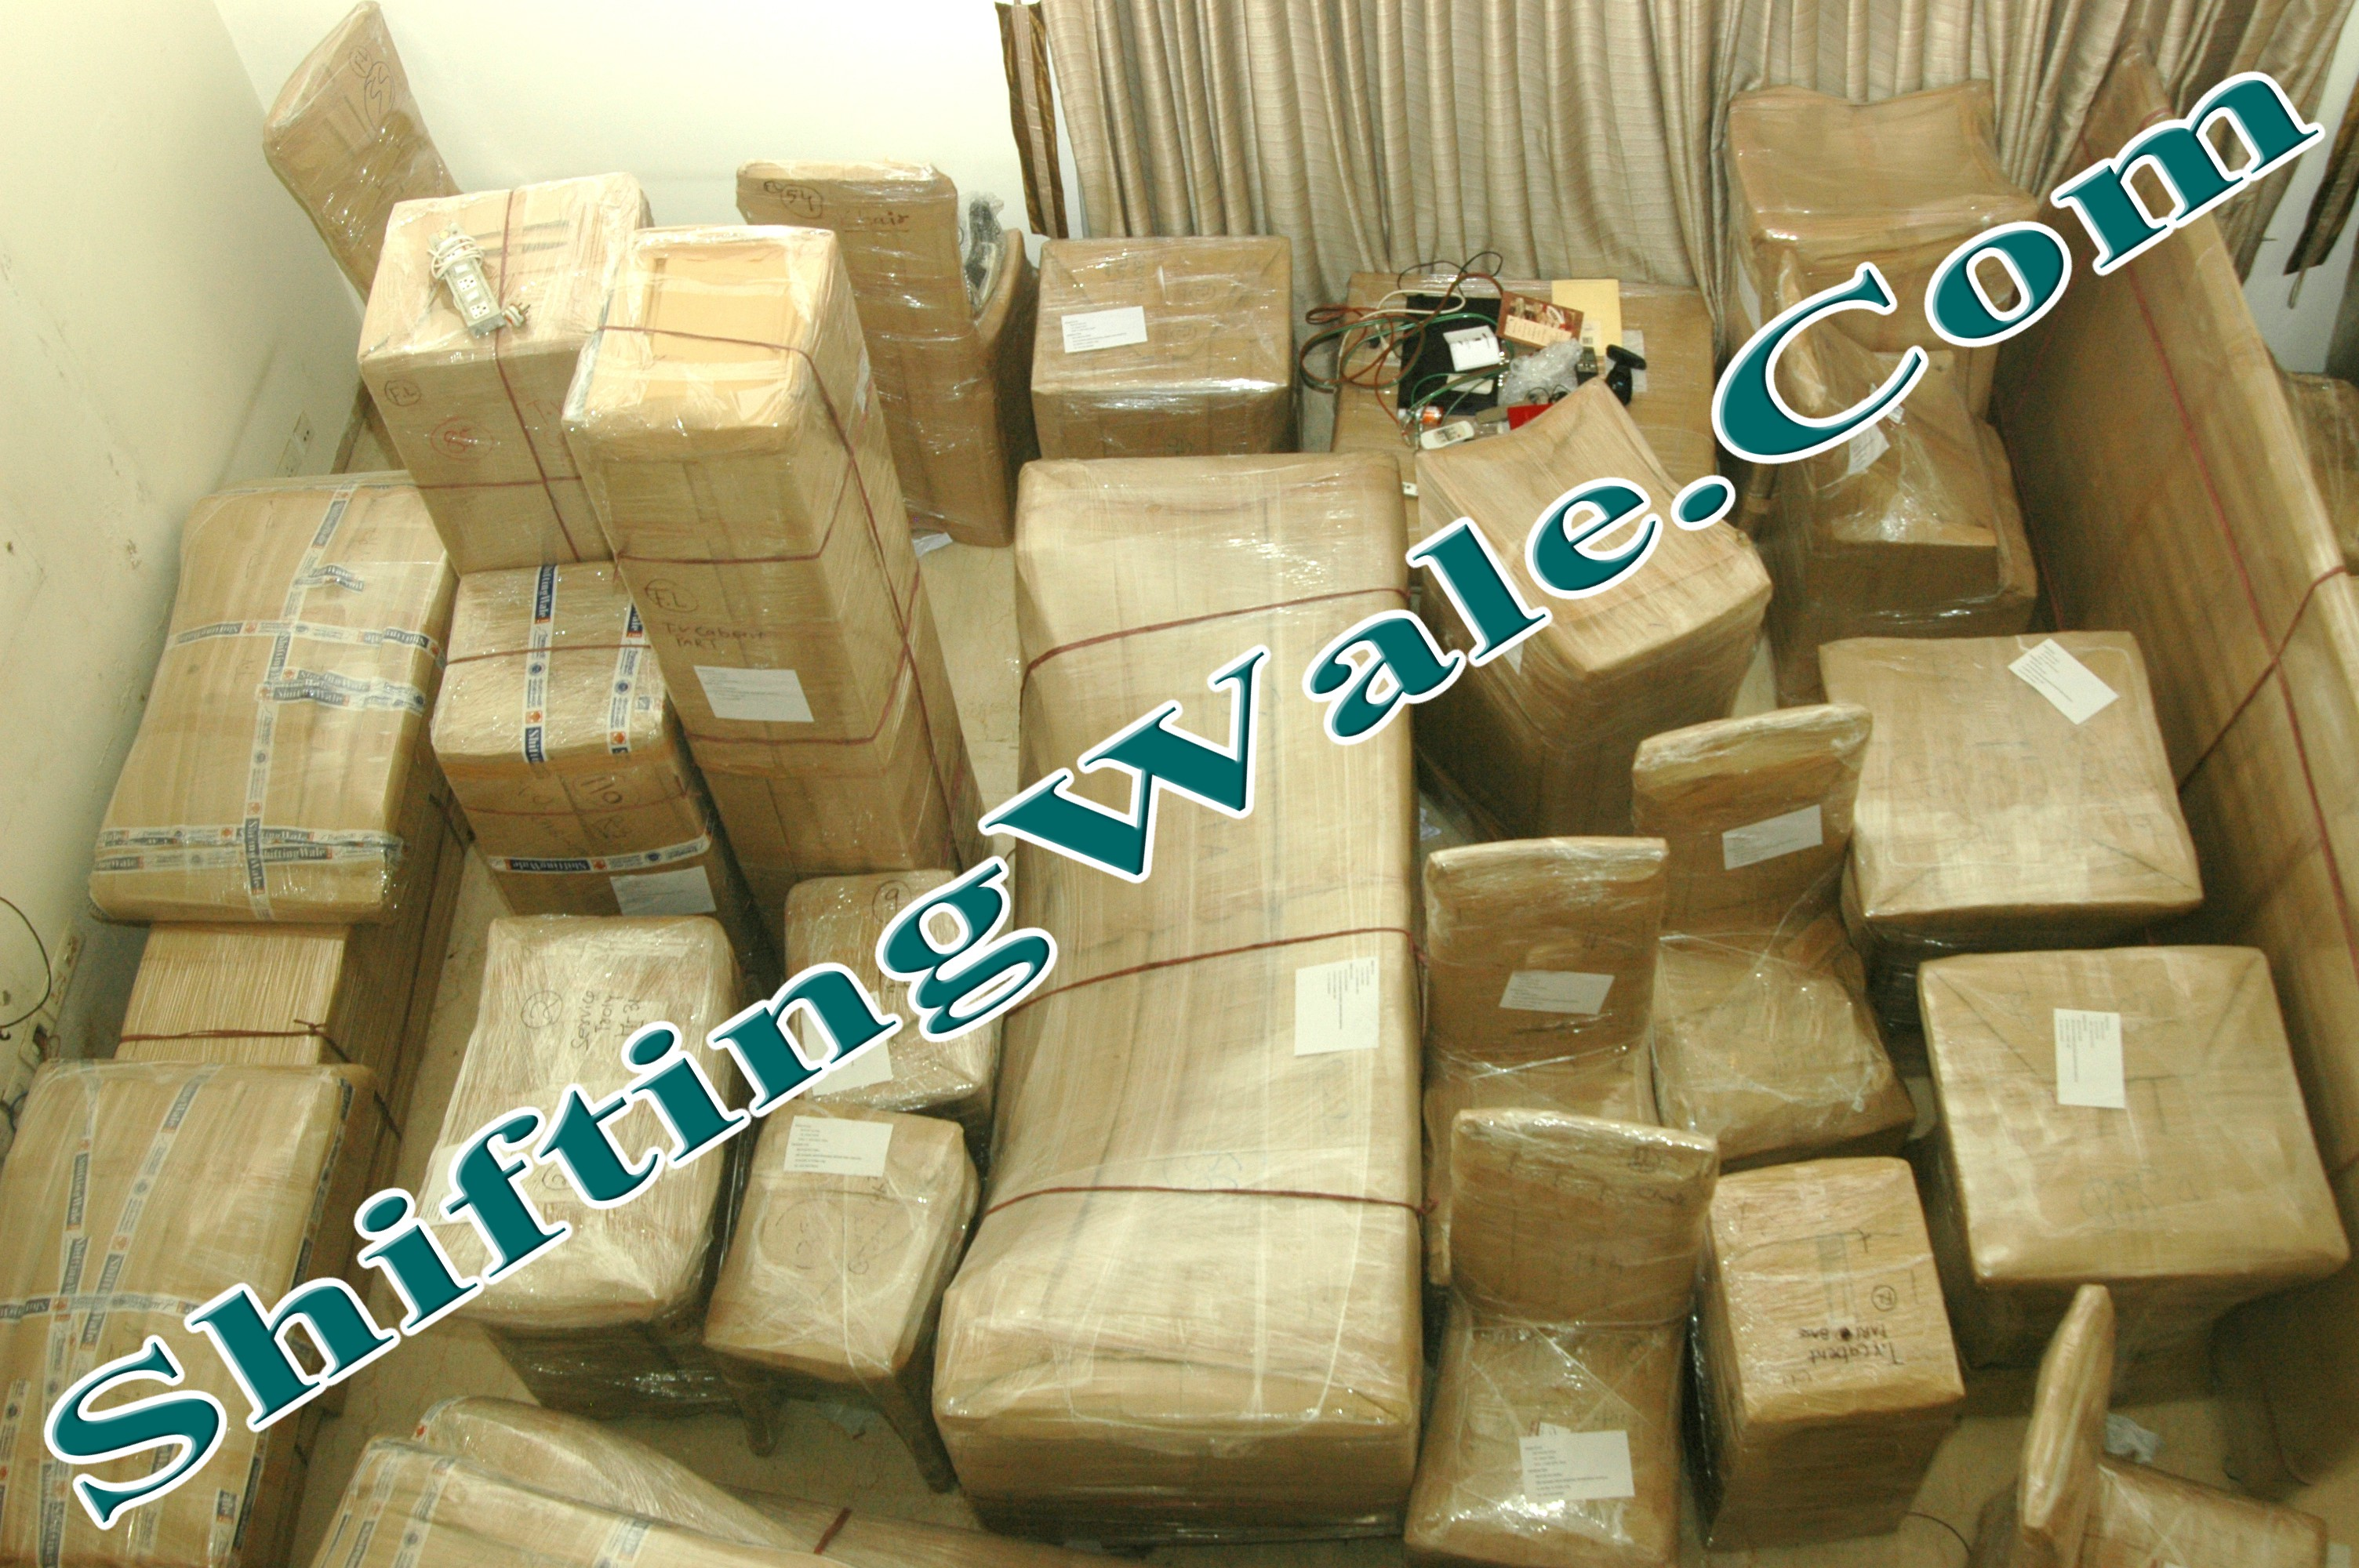 Thane to Panchkula Trusted Packers and Movers Get Best Shifting